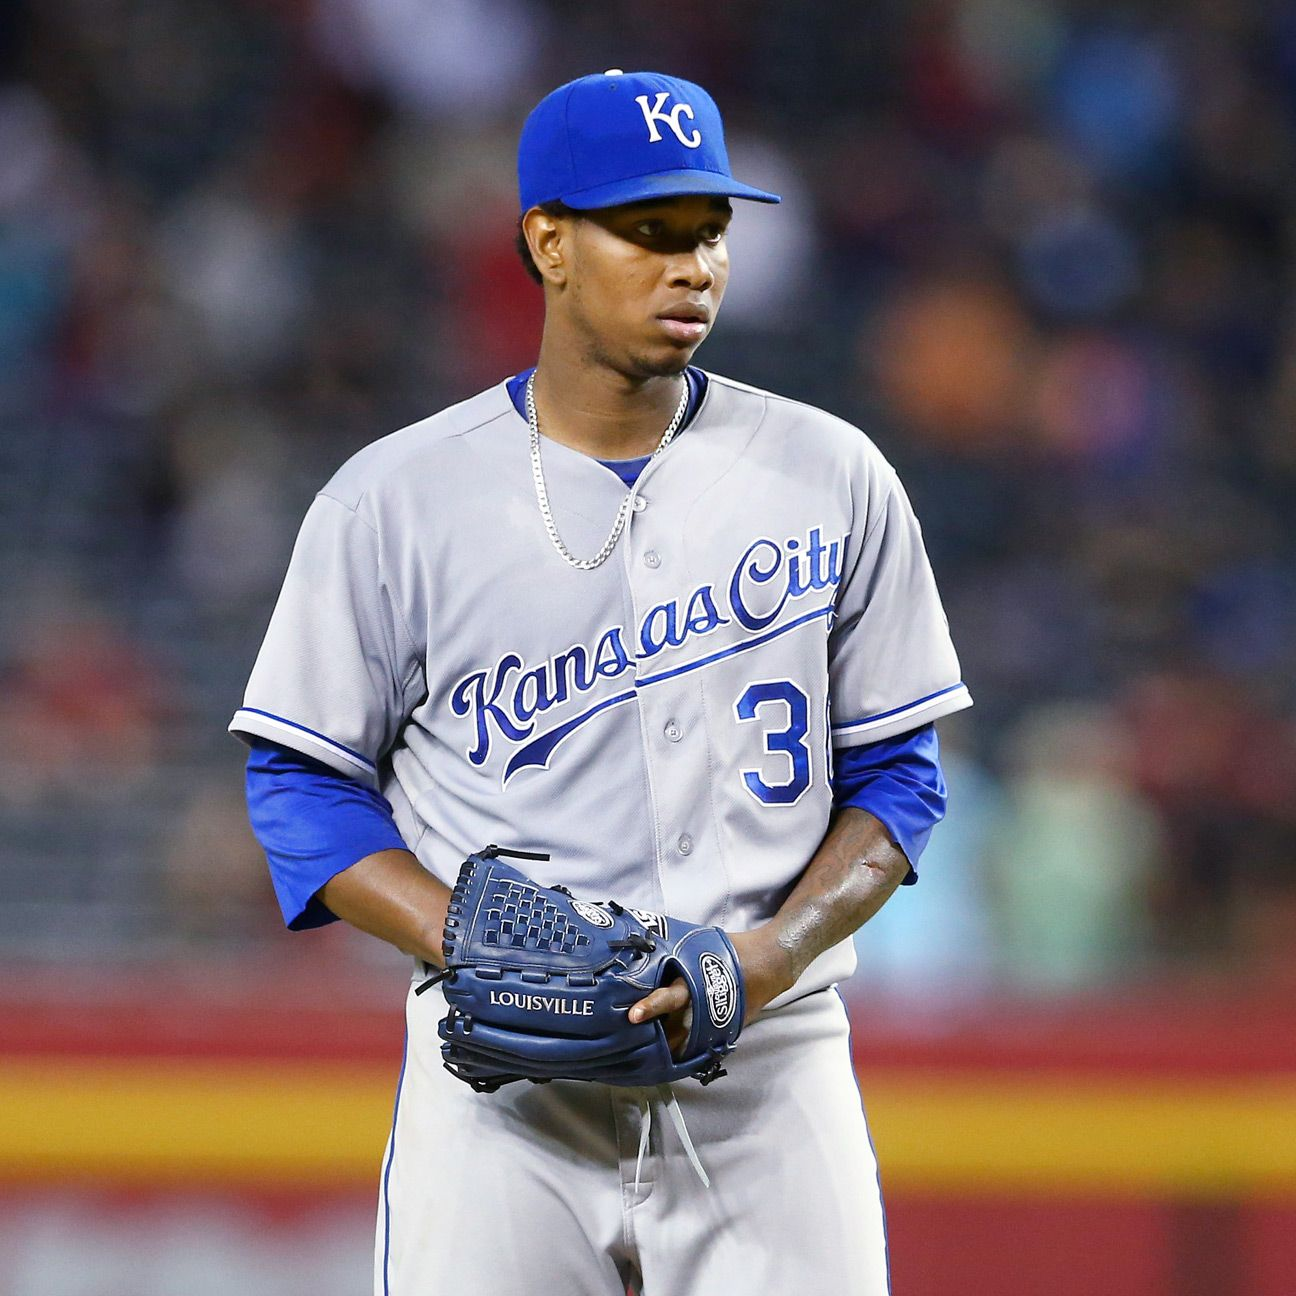 Royals Turn To Ventura In Game 2